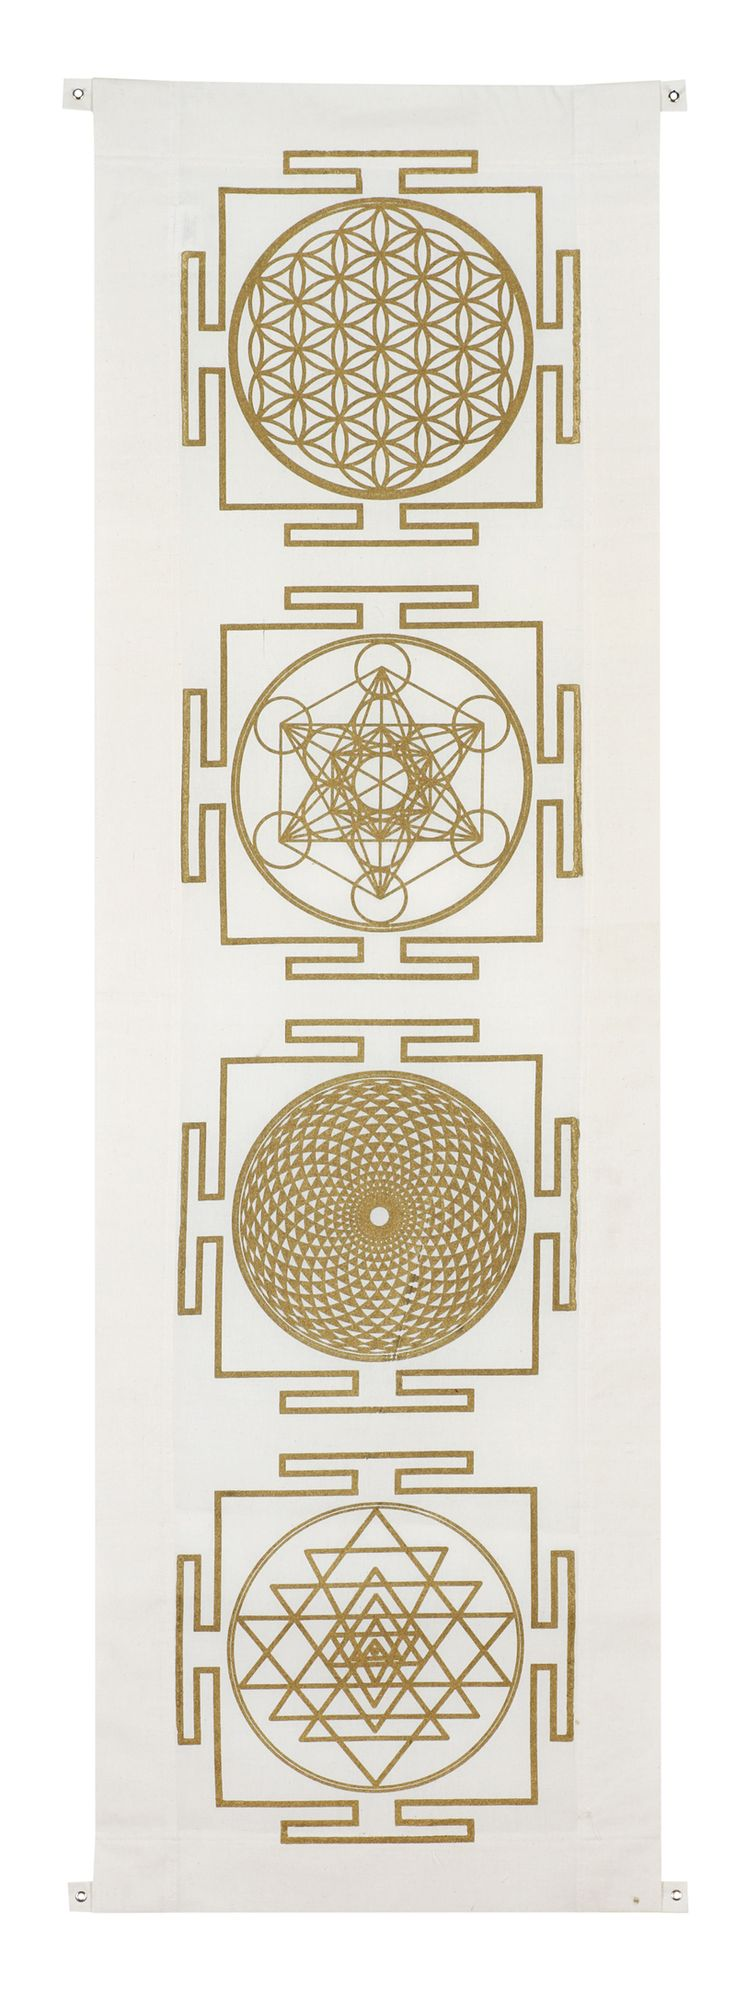 As the most significant of all the symbols in sacred geometry, the Flower of Life is encoded with the blue-print for all creation; containing within it the proportions of every single aspect of life there is.   Four yantra banner includes the symbols: flower of life, metatrons cube,  sahashara and sri yantra.